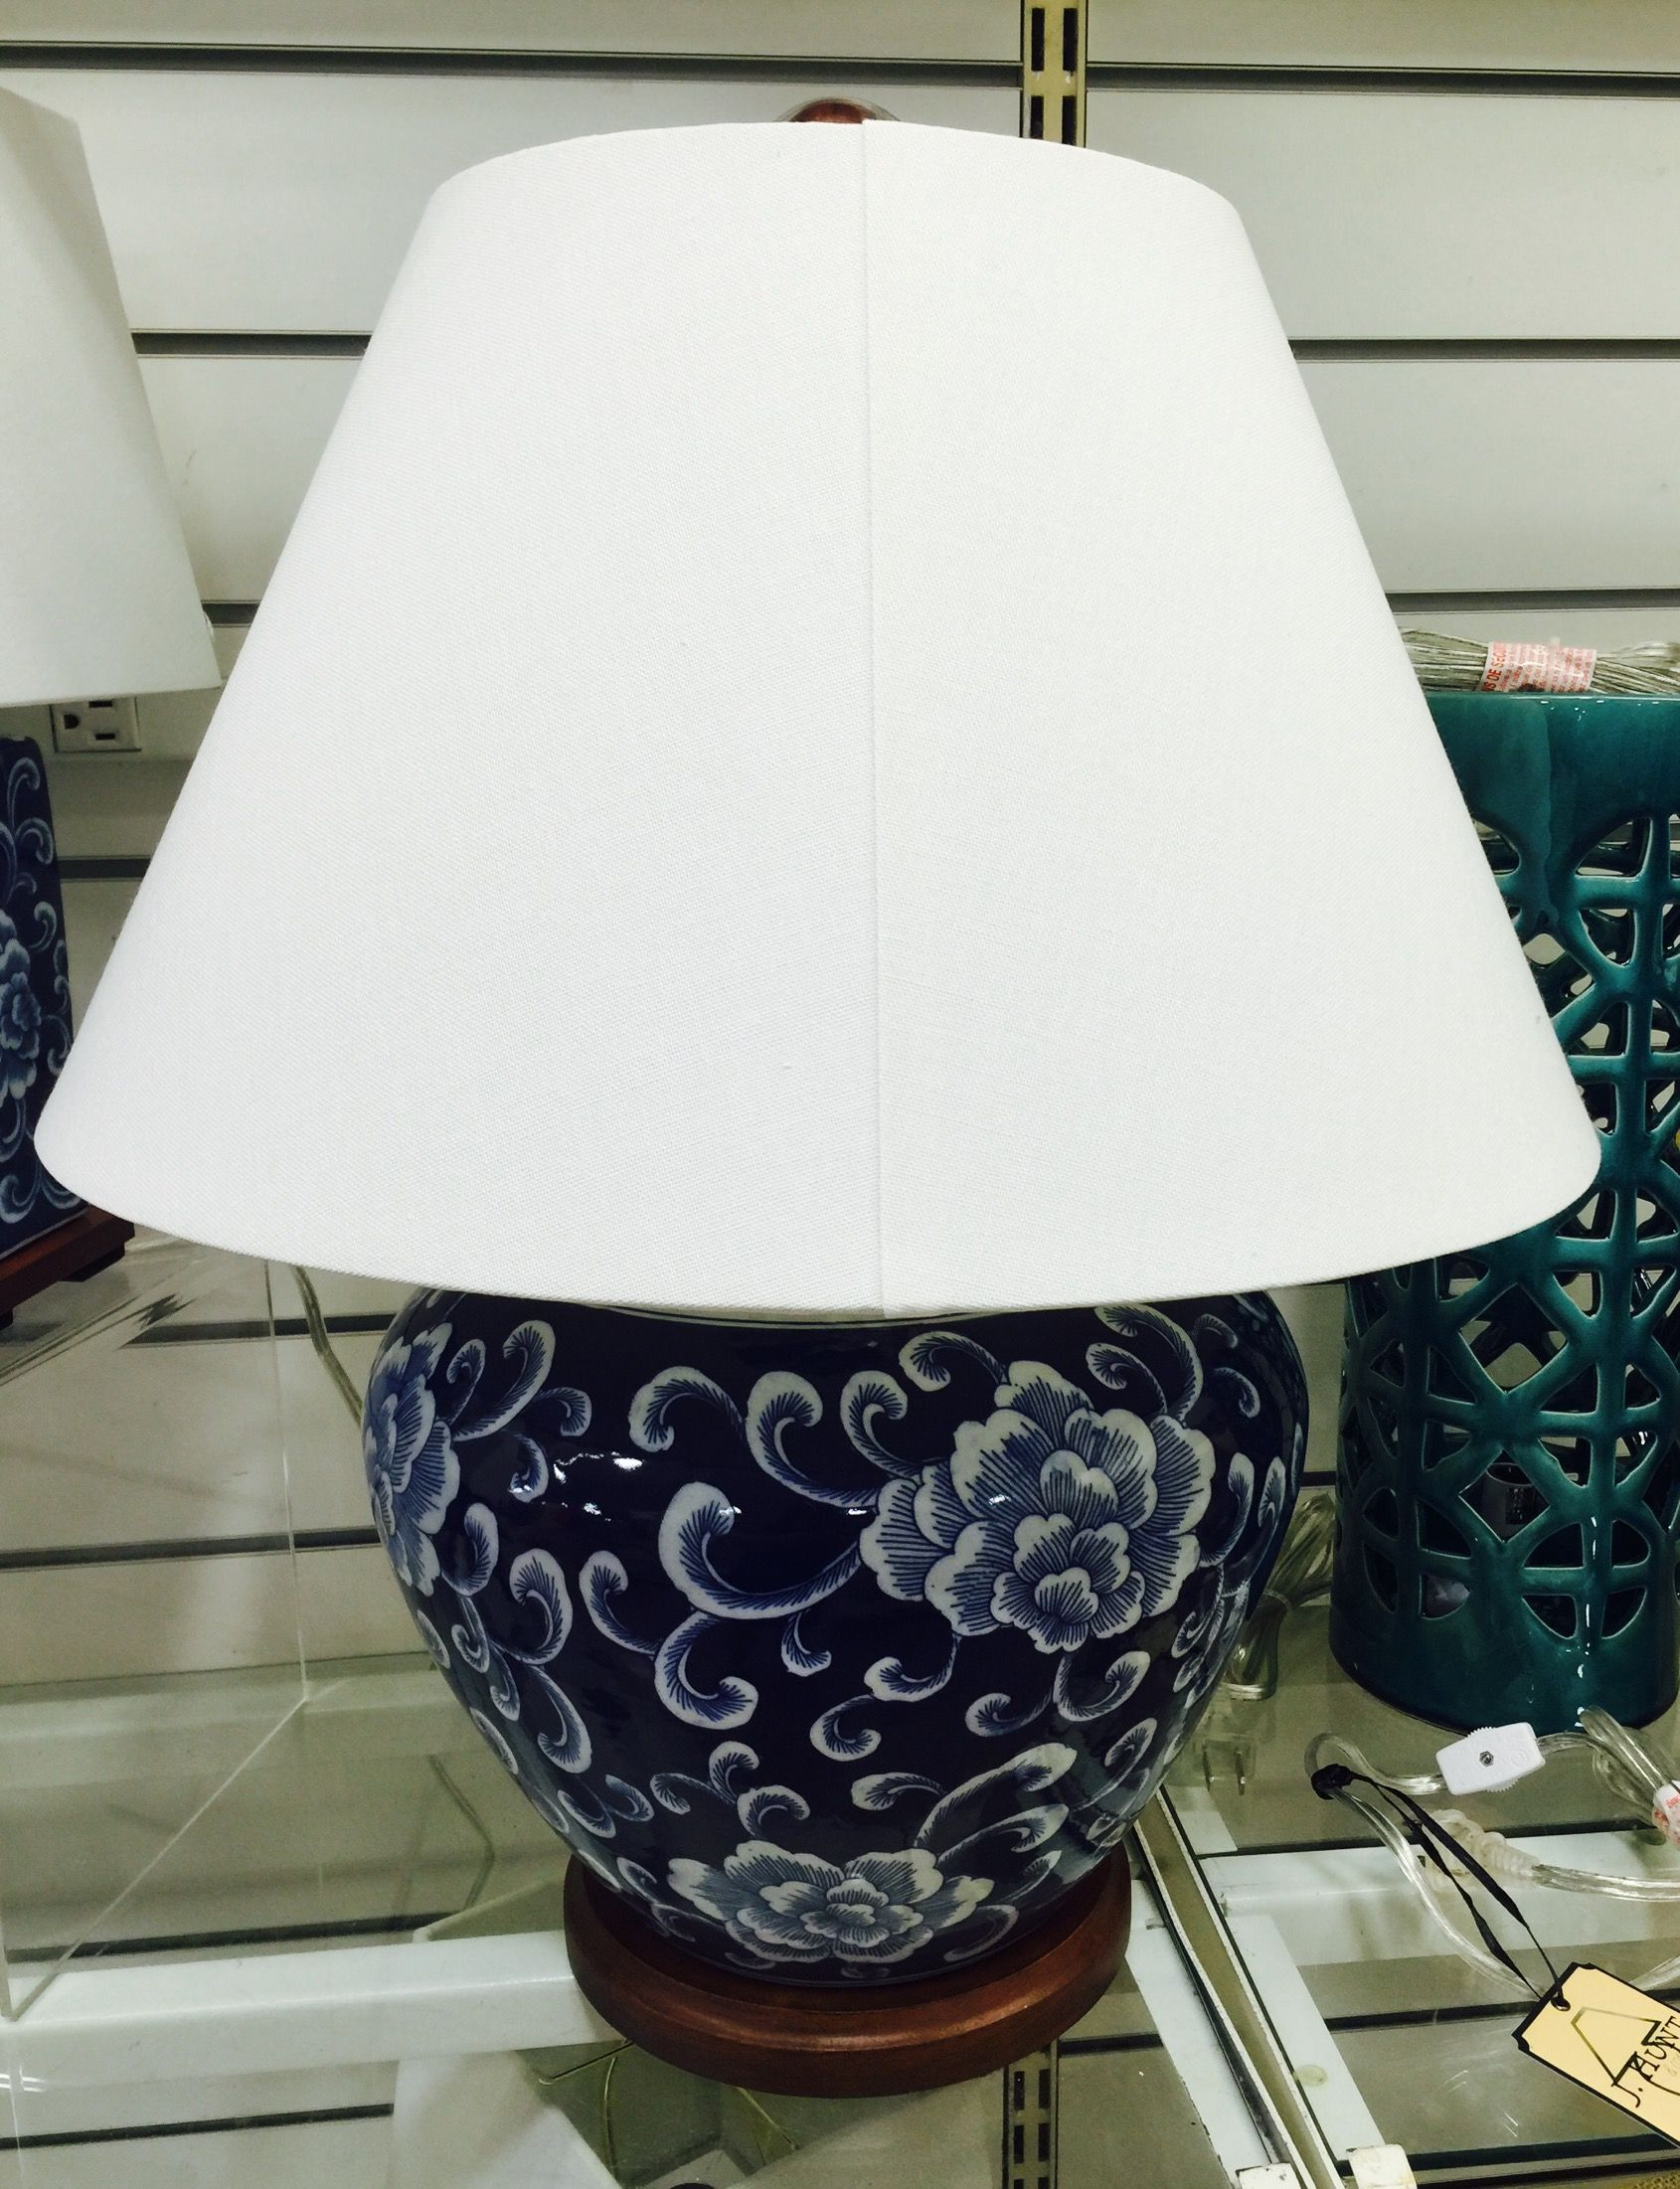 Lauren ralph lauren blue and white floral ceramic table lamp 130 at lauren ralph lauren blue and white floral ceramic table lamp 130 at homegoods august 2016 arubaitofo Images